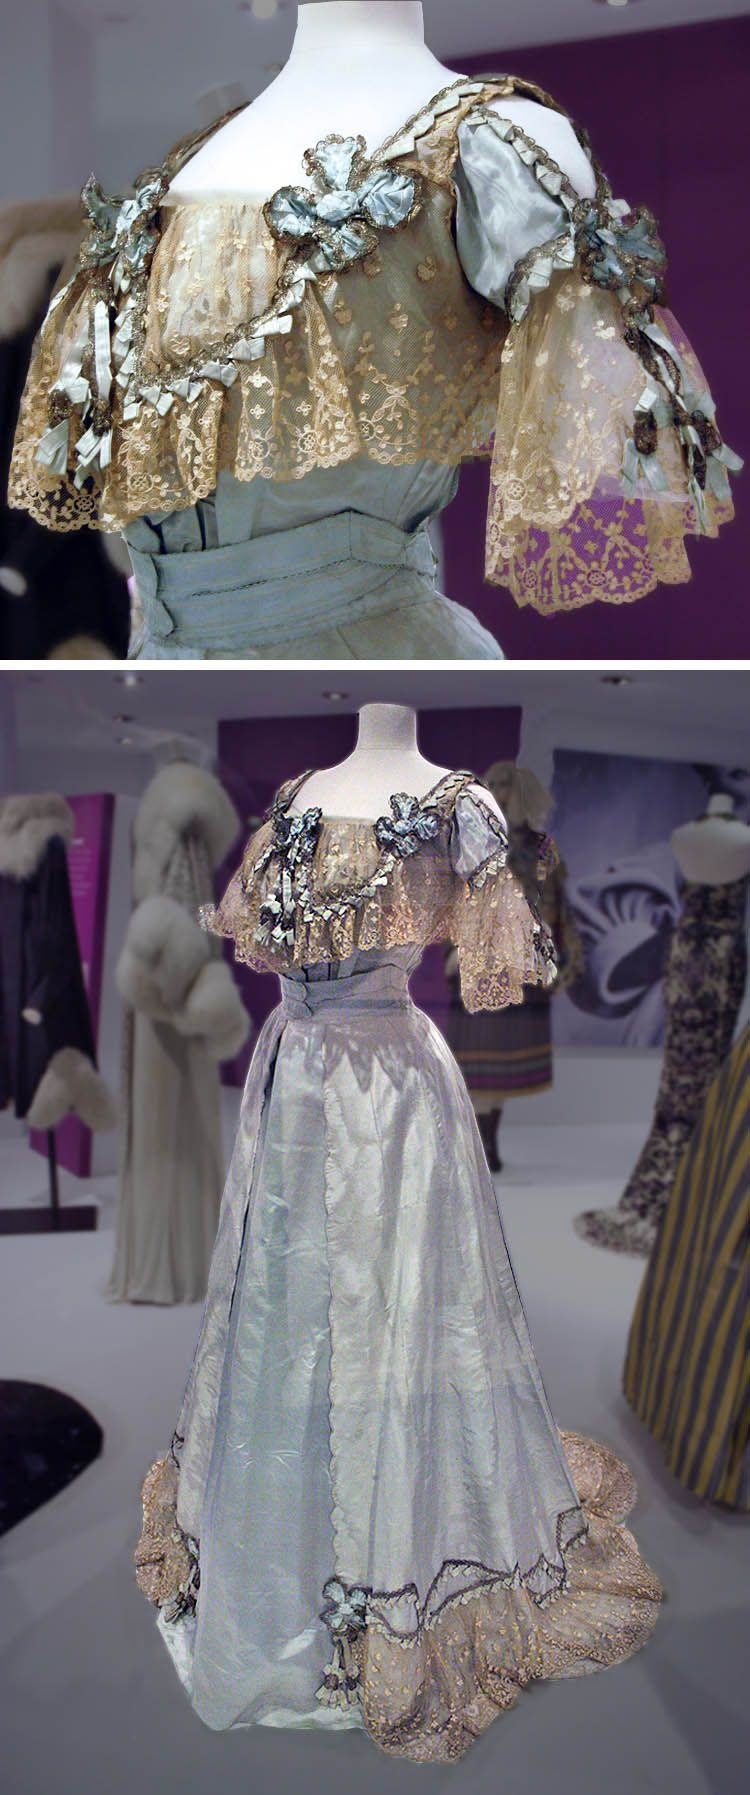 Light blue silk evening dress with applied lace and ribbons, Callot Soeurs, ca. 1906. Probably from the Fashion Museum, Bath. Top photo: Becky Pitzer/Flickr. Bottom: Eileen Bloom/Flickr